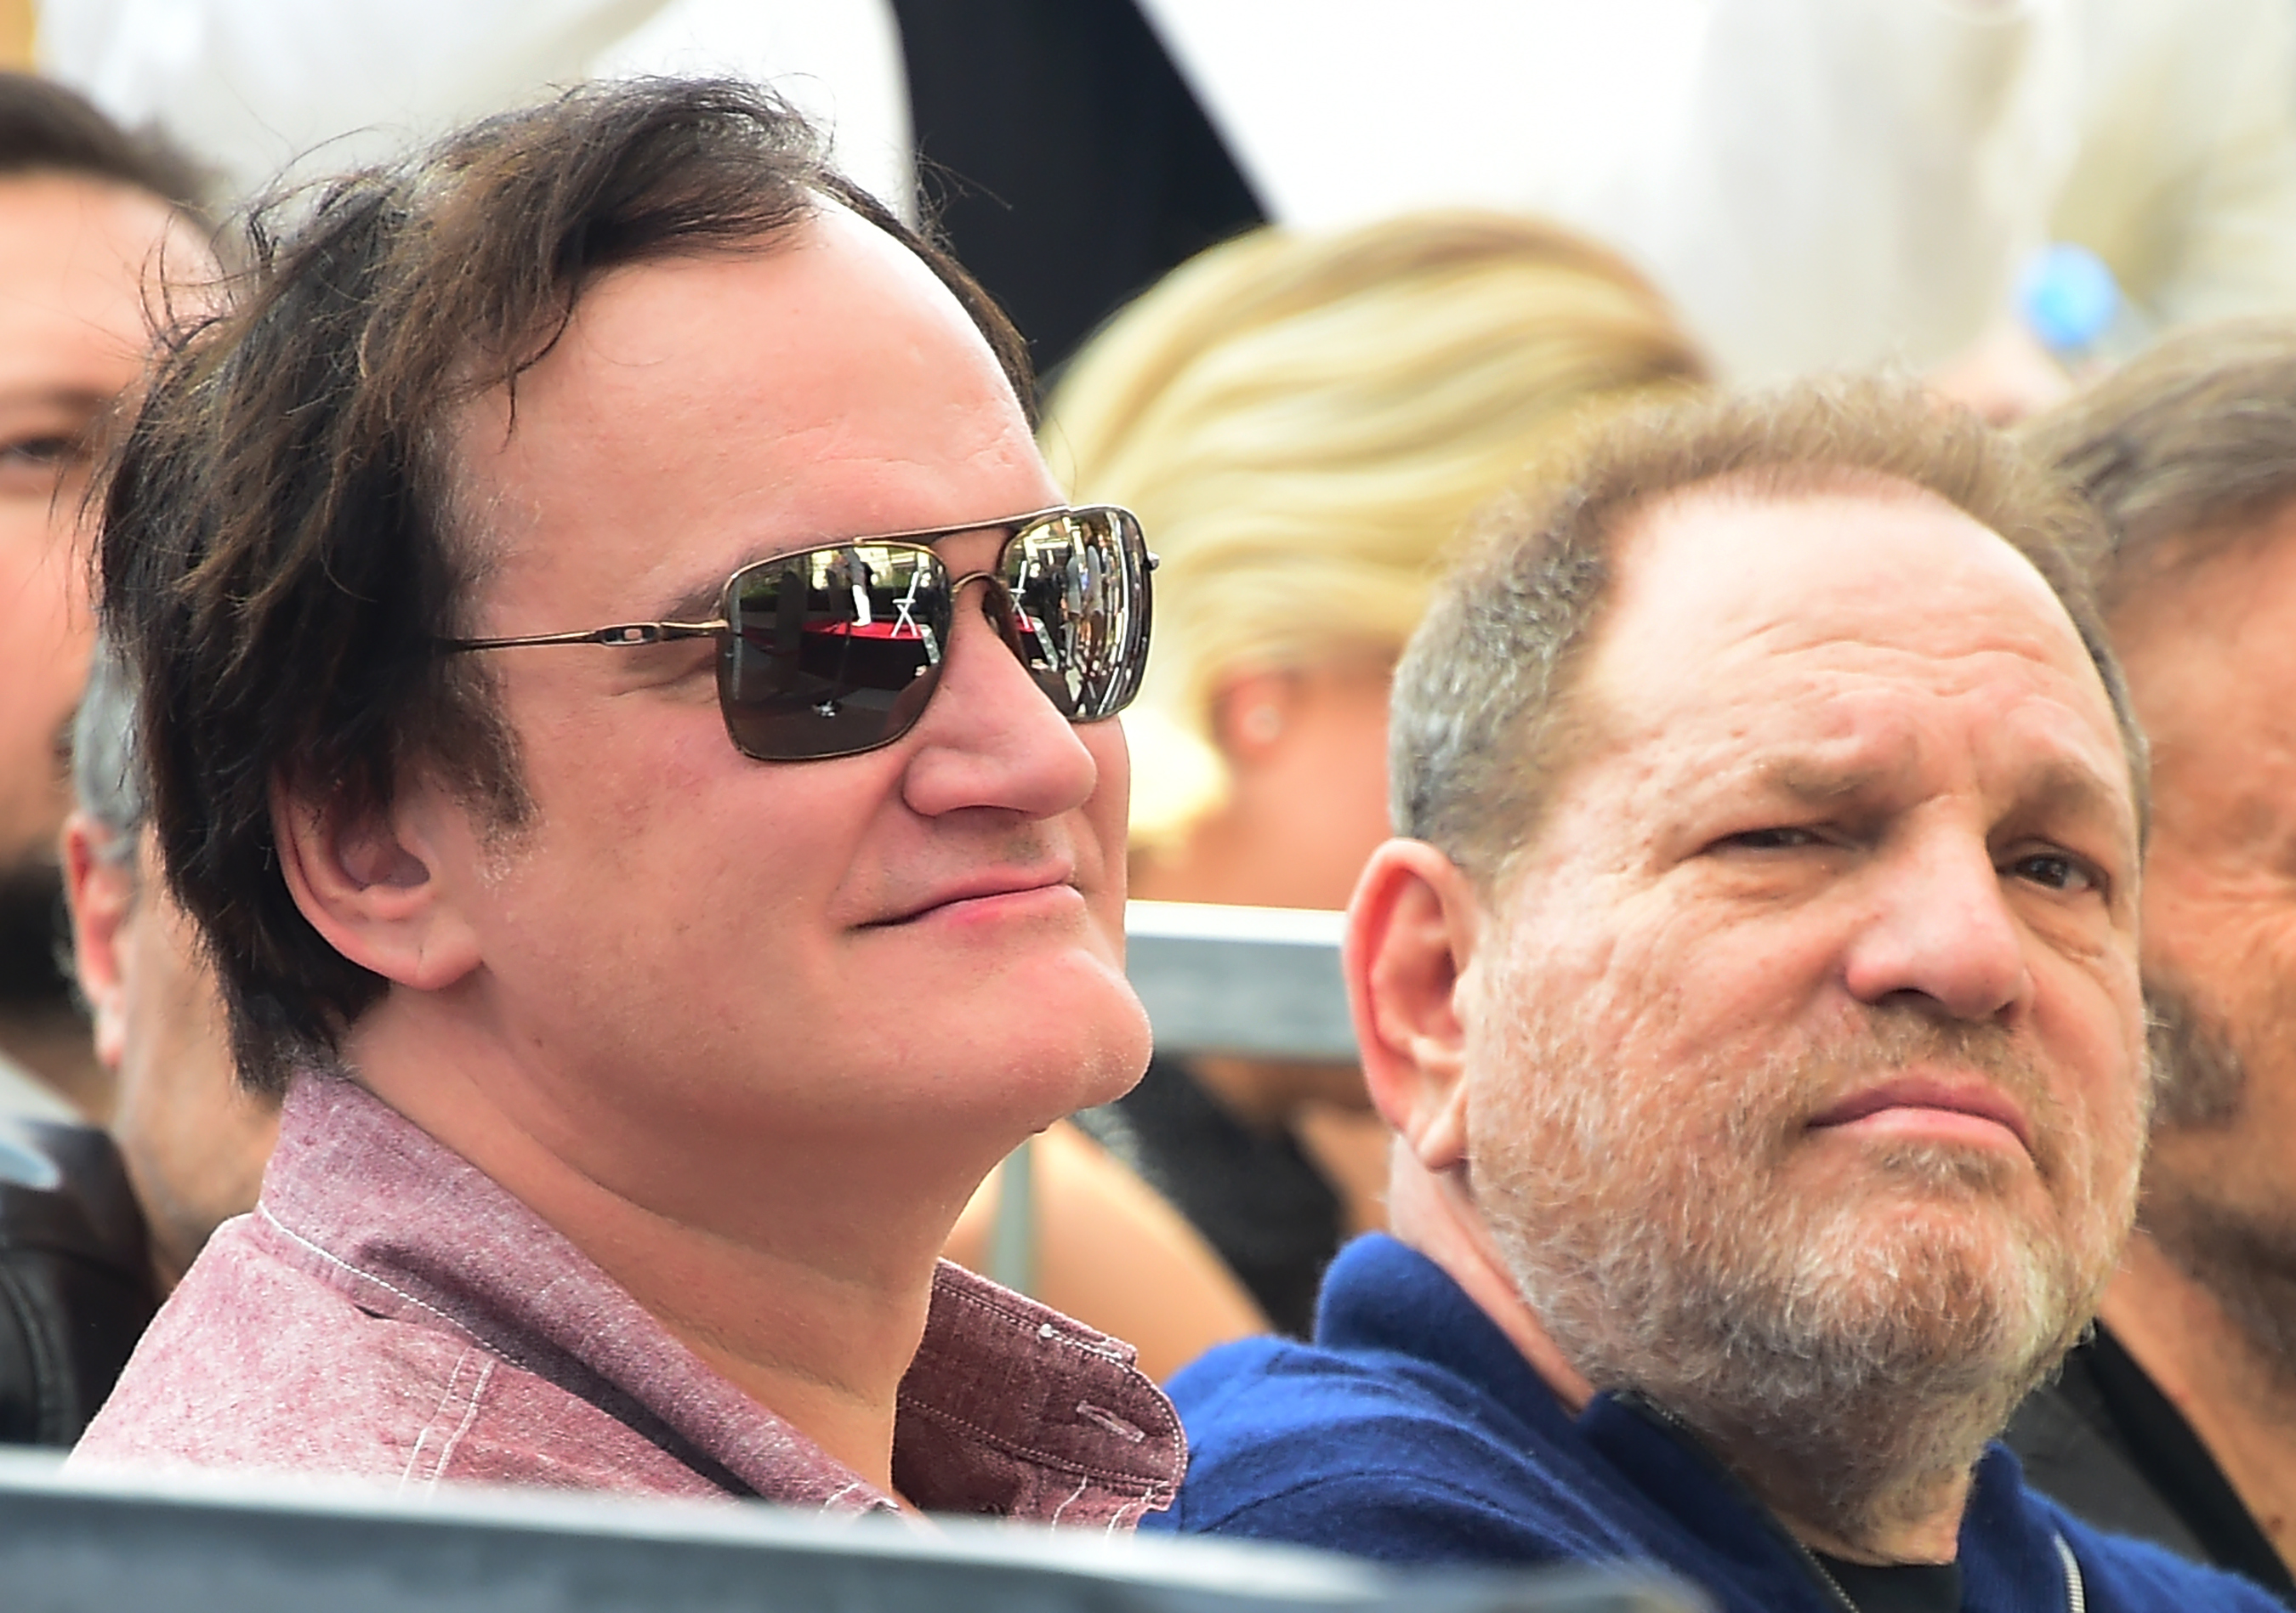 Film director Quentin Tarantino and producer Harvey Weinstein attend Italian composer Ennio Morricone's  Hollywood Walk of Fame Star ceremony on Feb. 26, 2016 in Hollywood.